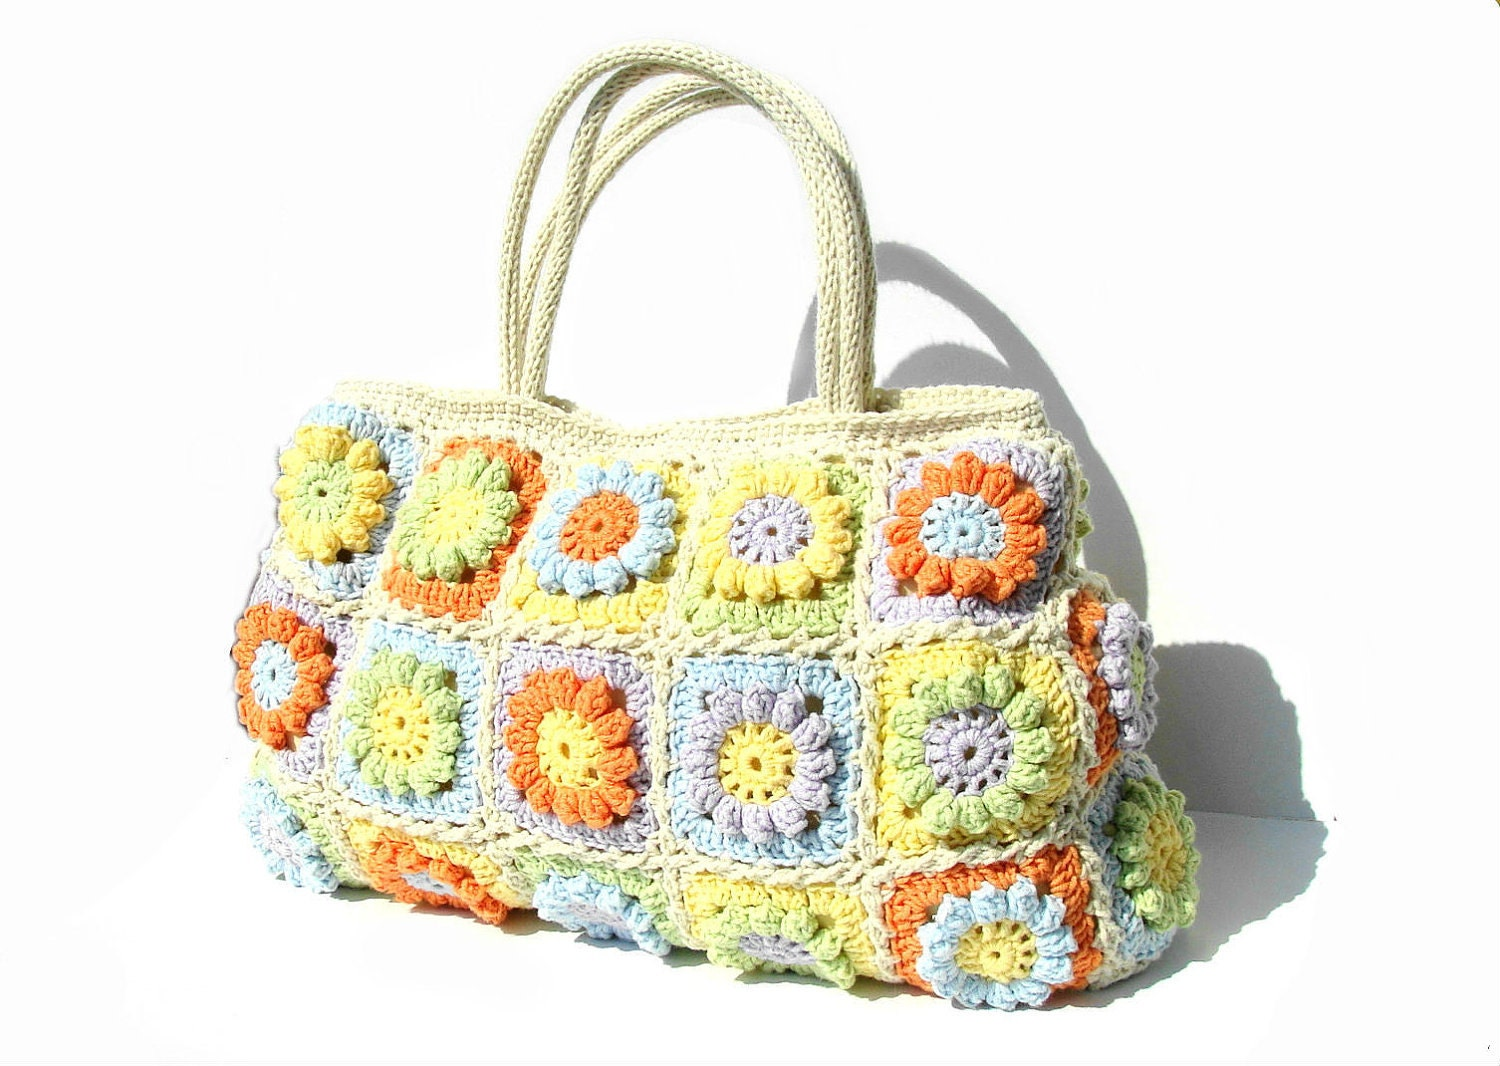 Flower crochet handbag, crochet bag in bright summer colors